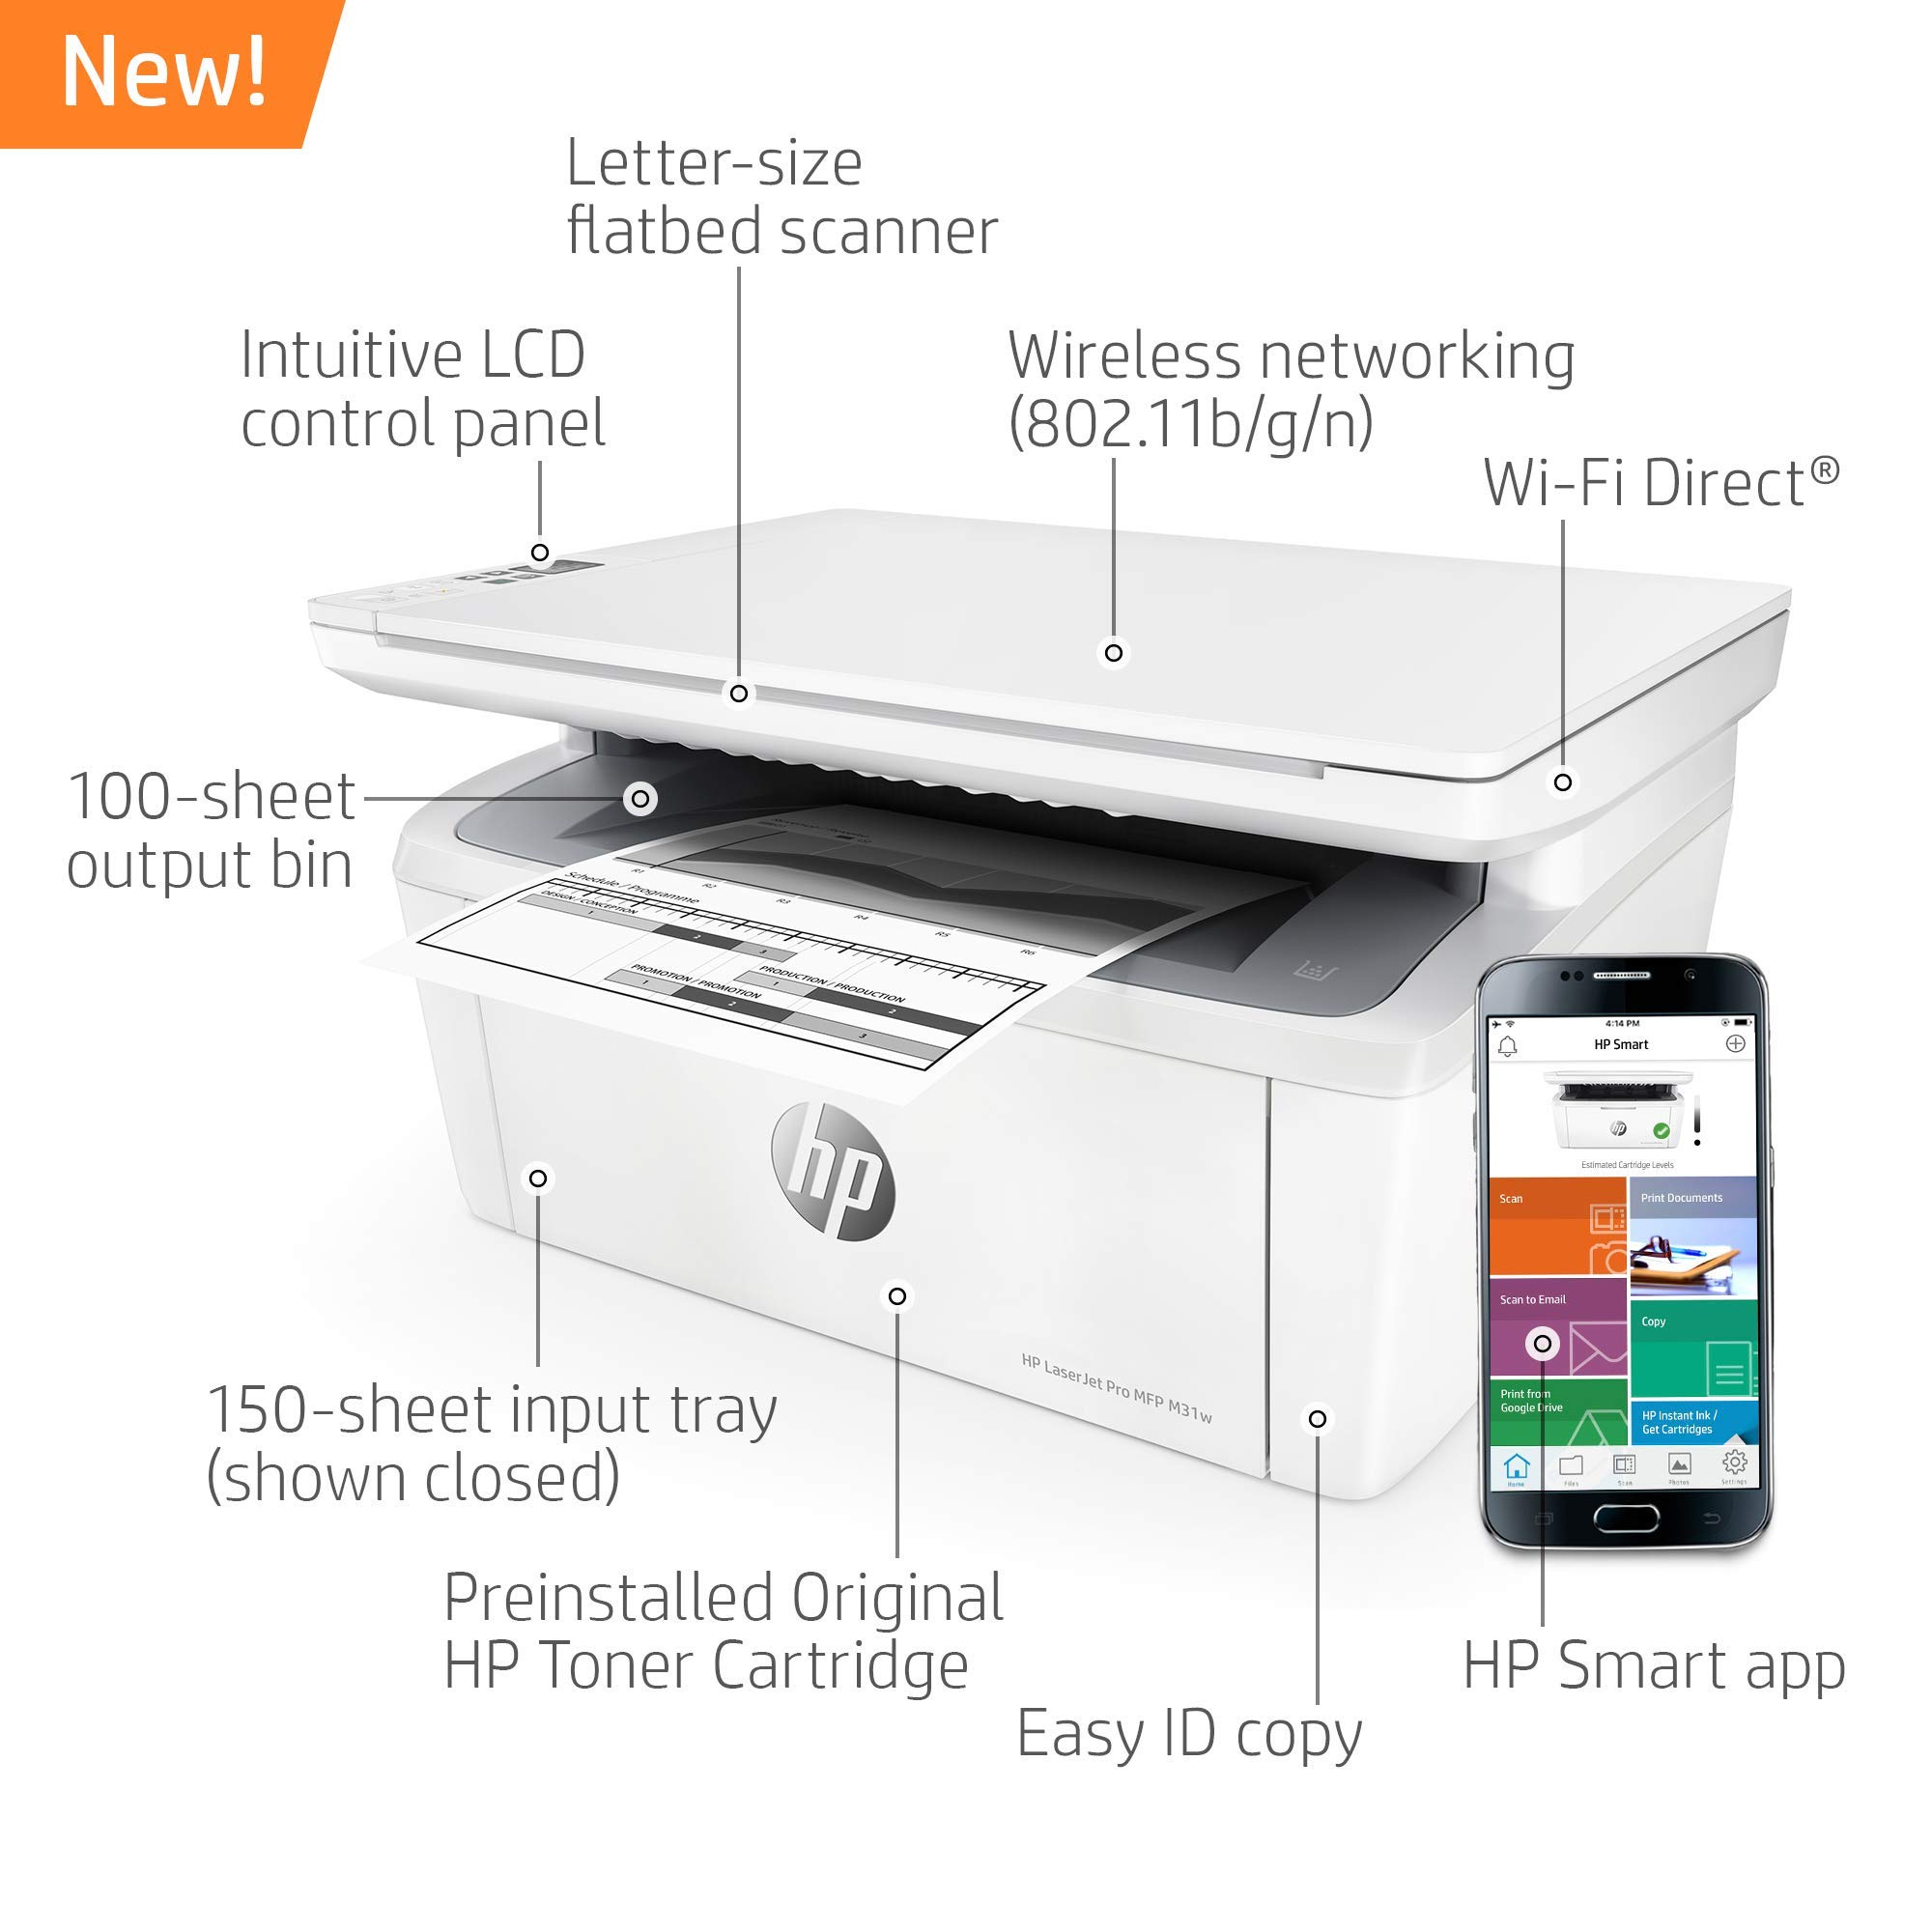 HP Laserjet Pro M31w All-in-One Wireless Monochrome Laser Printer with Mobile Printing (Y5S55A) (Renewed) by HP (Image #3)